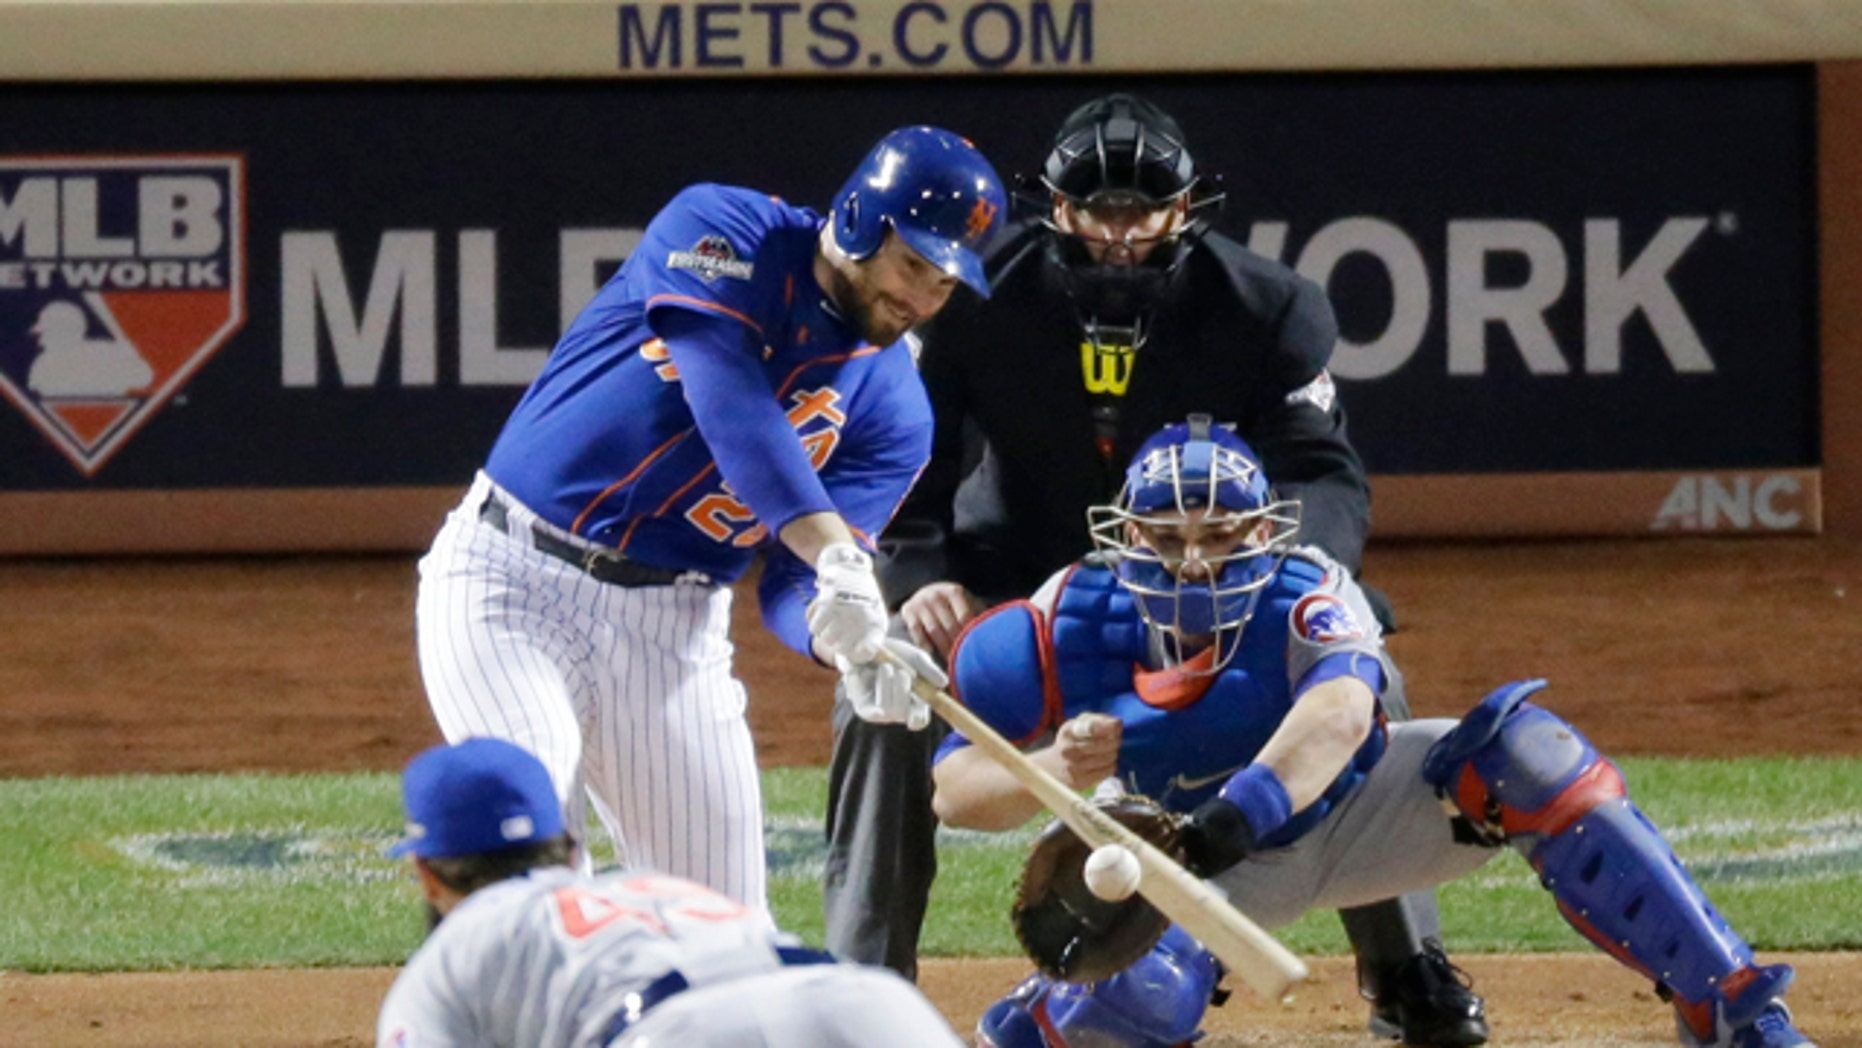 Murphy homers again as Mets go 2-0 up on Cubs in NLCS | Fox News